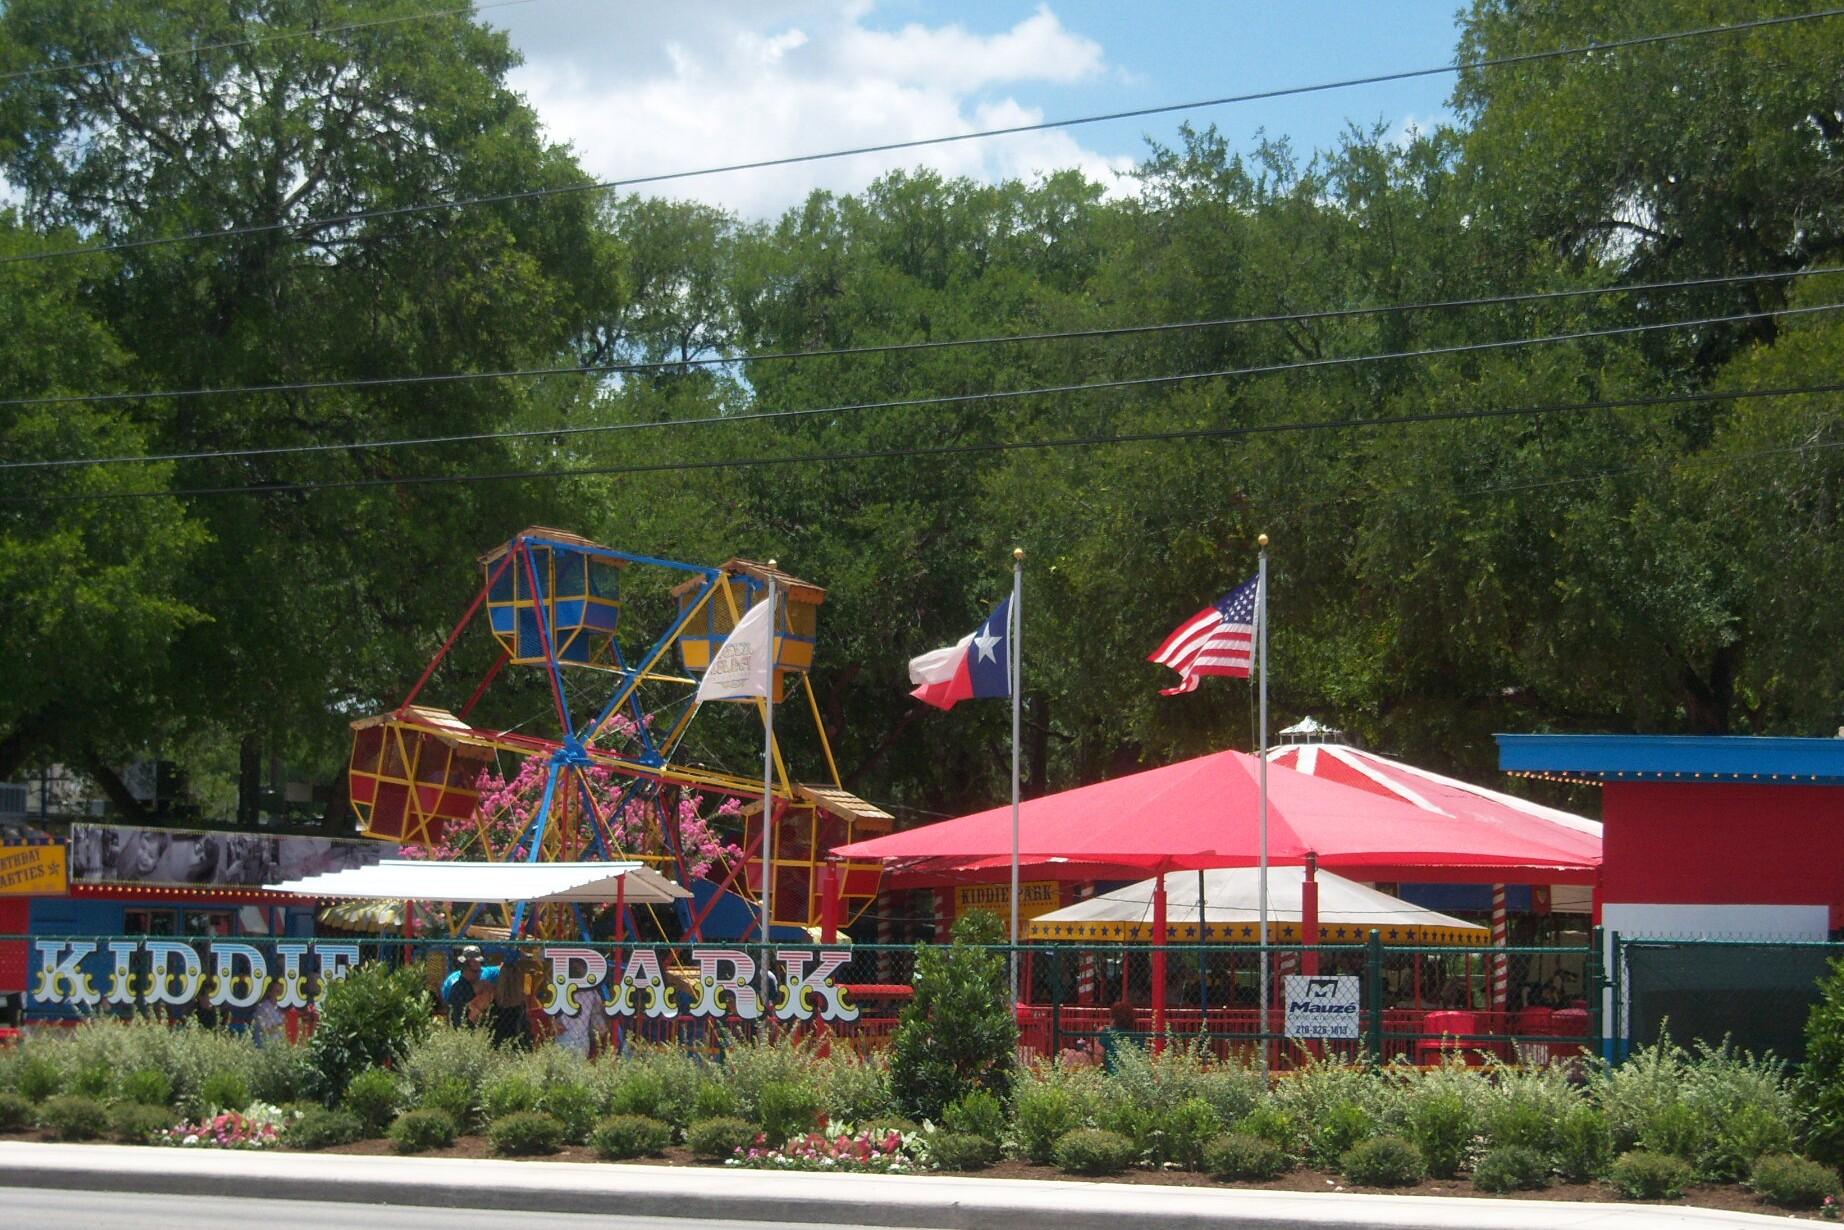 Photo of Kiddie Park, an amusement park for the toddler to elementary school set.